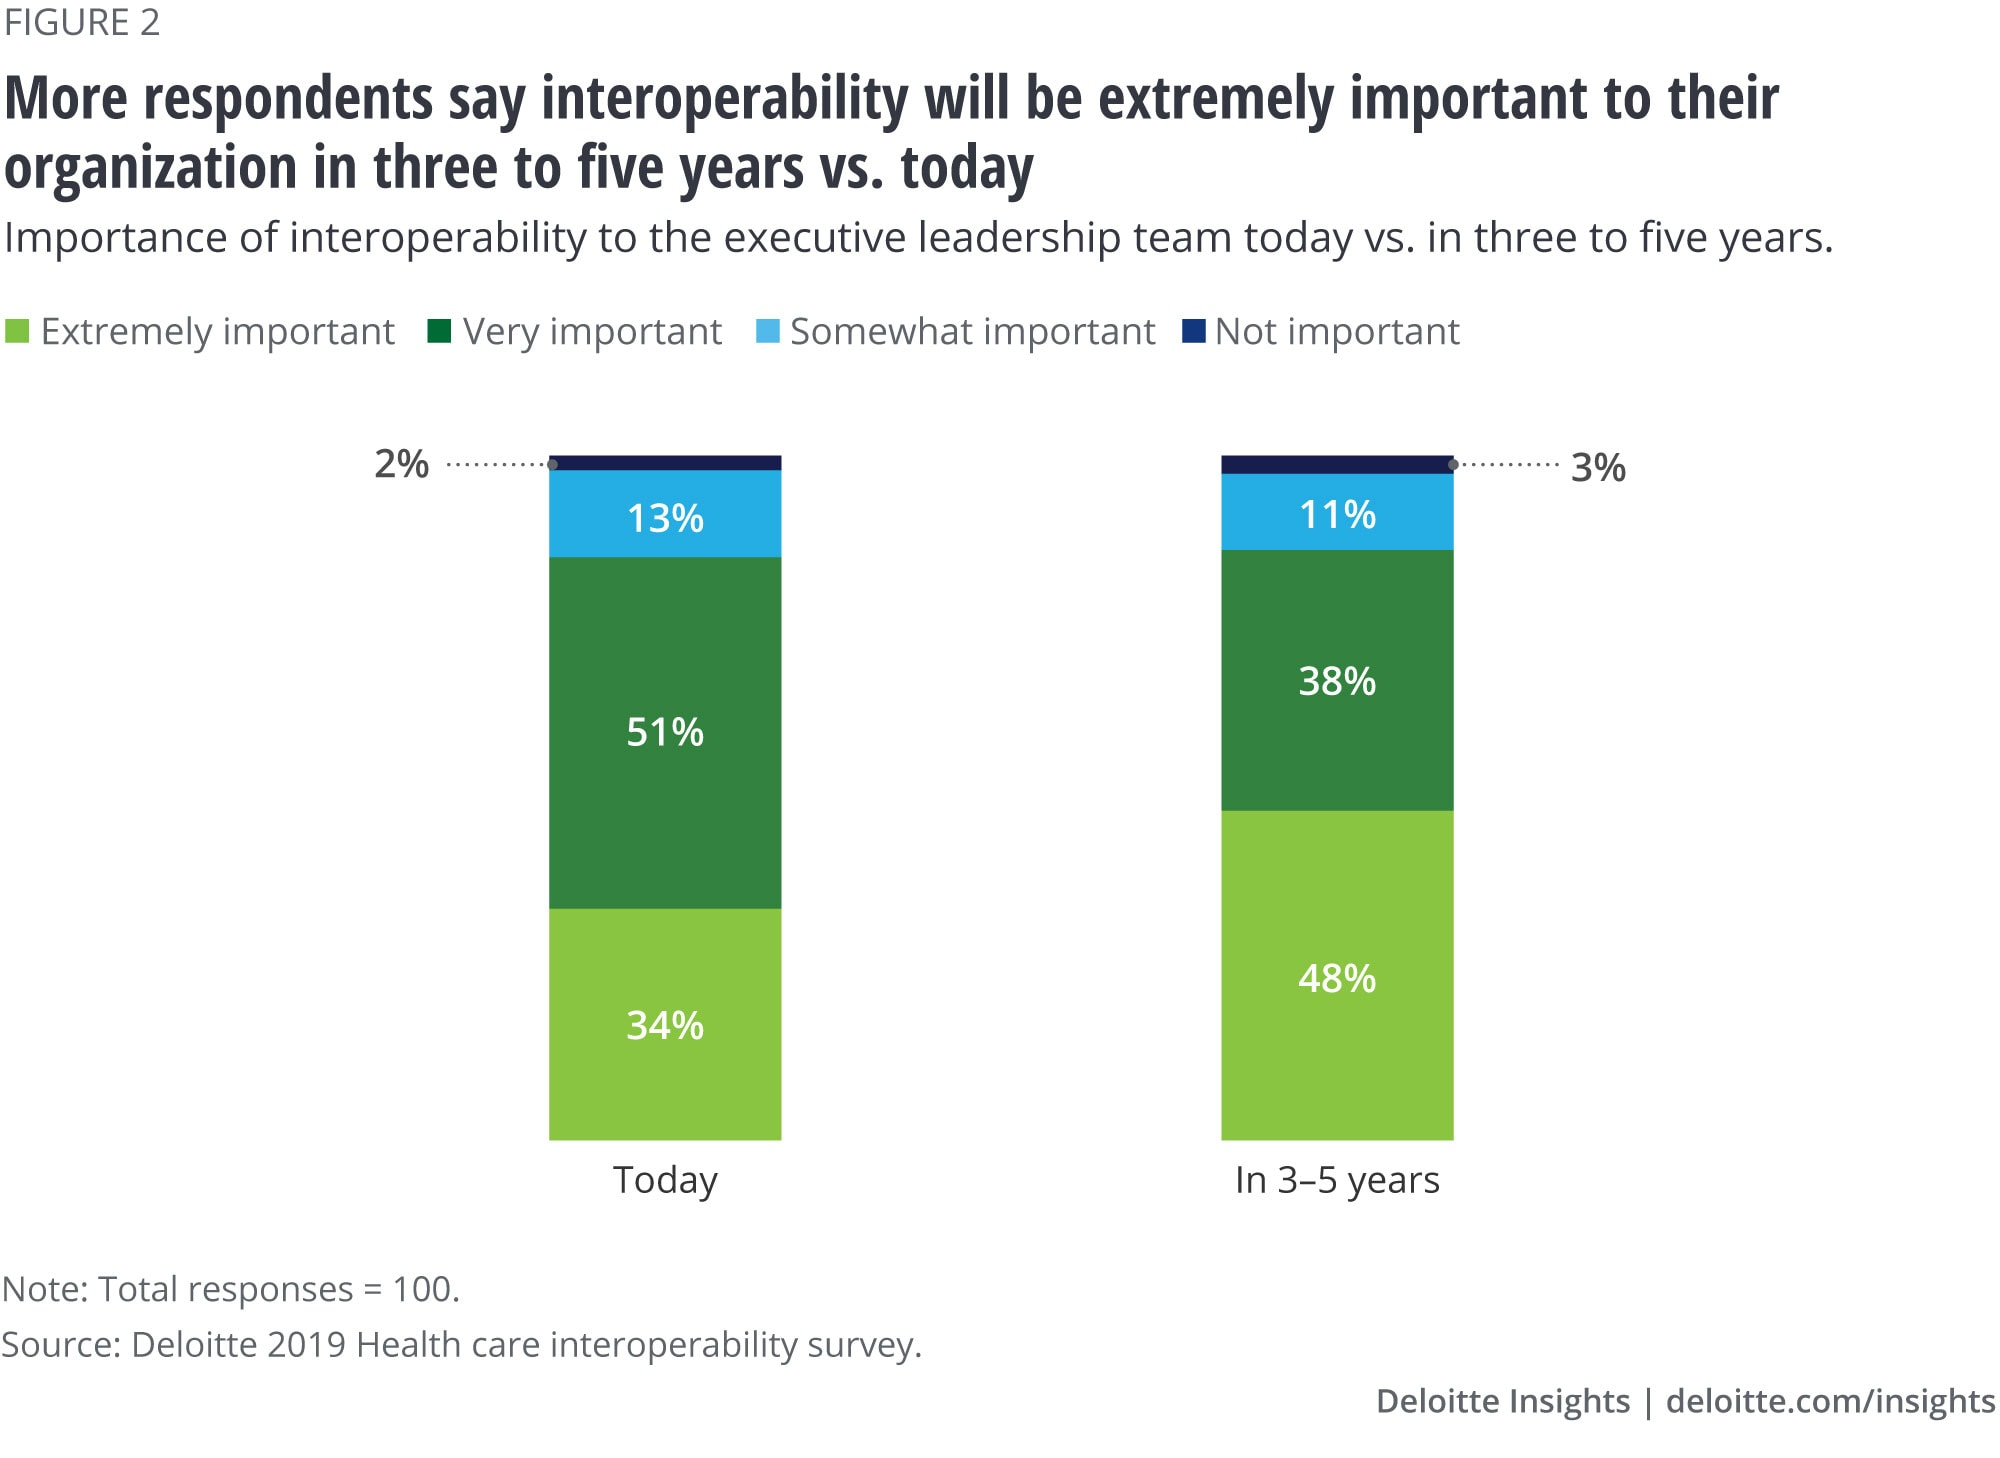 More respondents say interoperability will be extremely important to their organization in three to five years vs. today